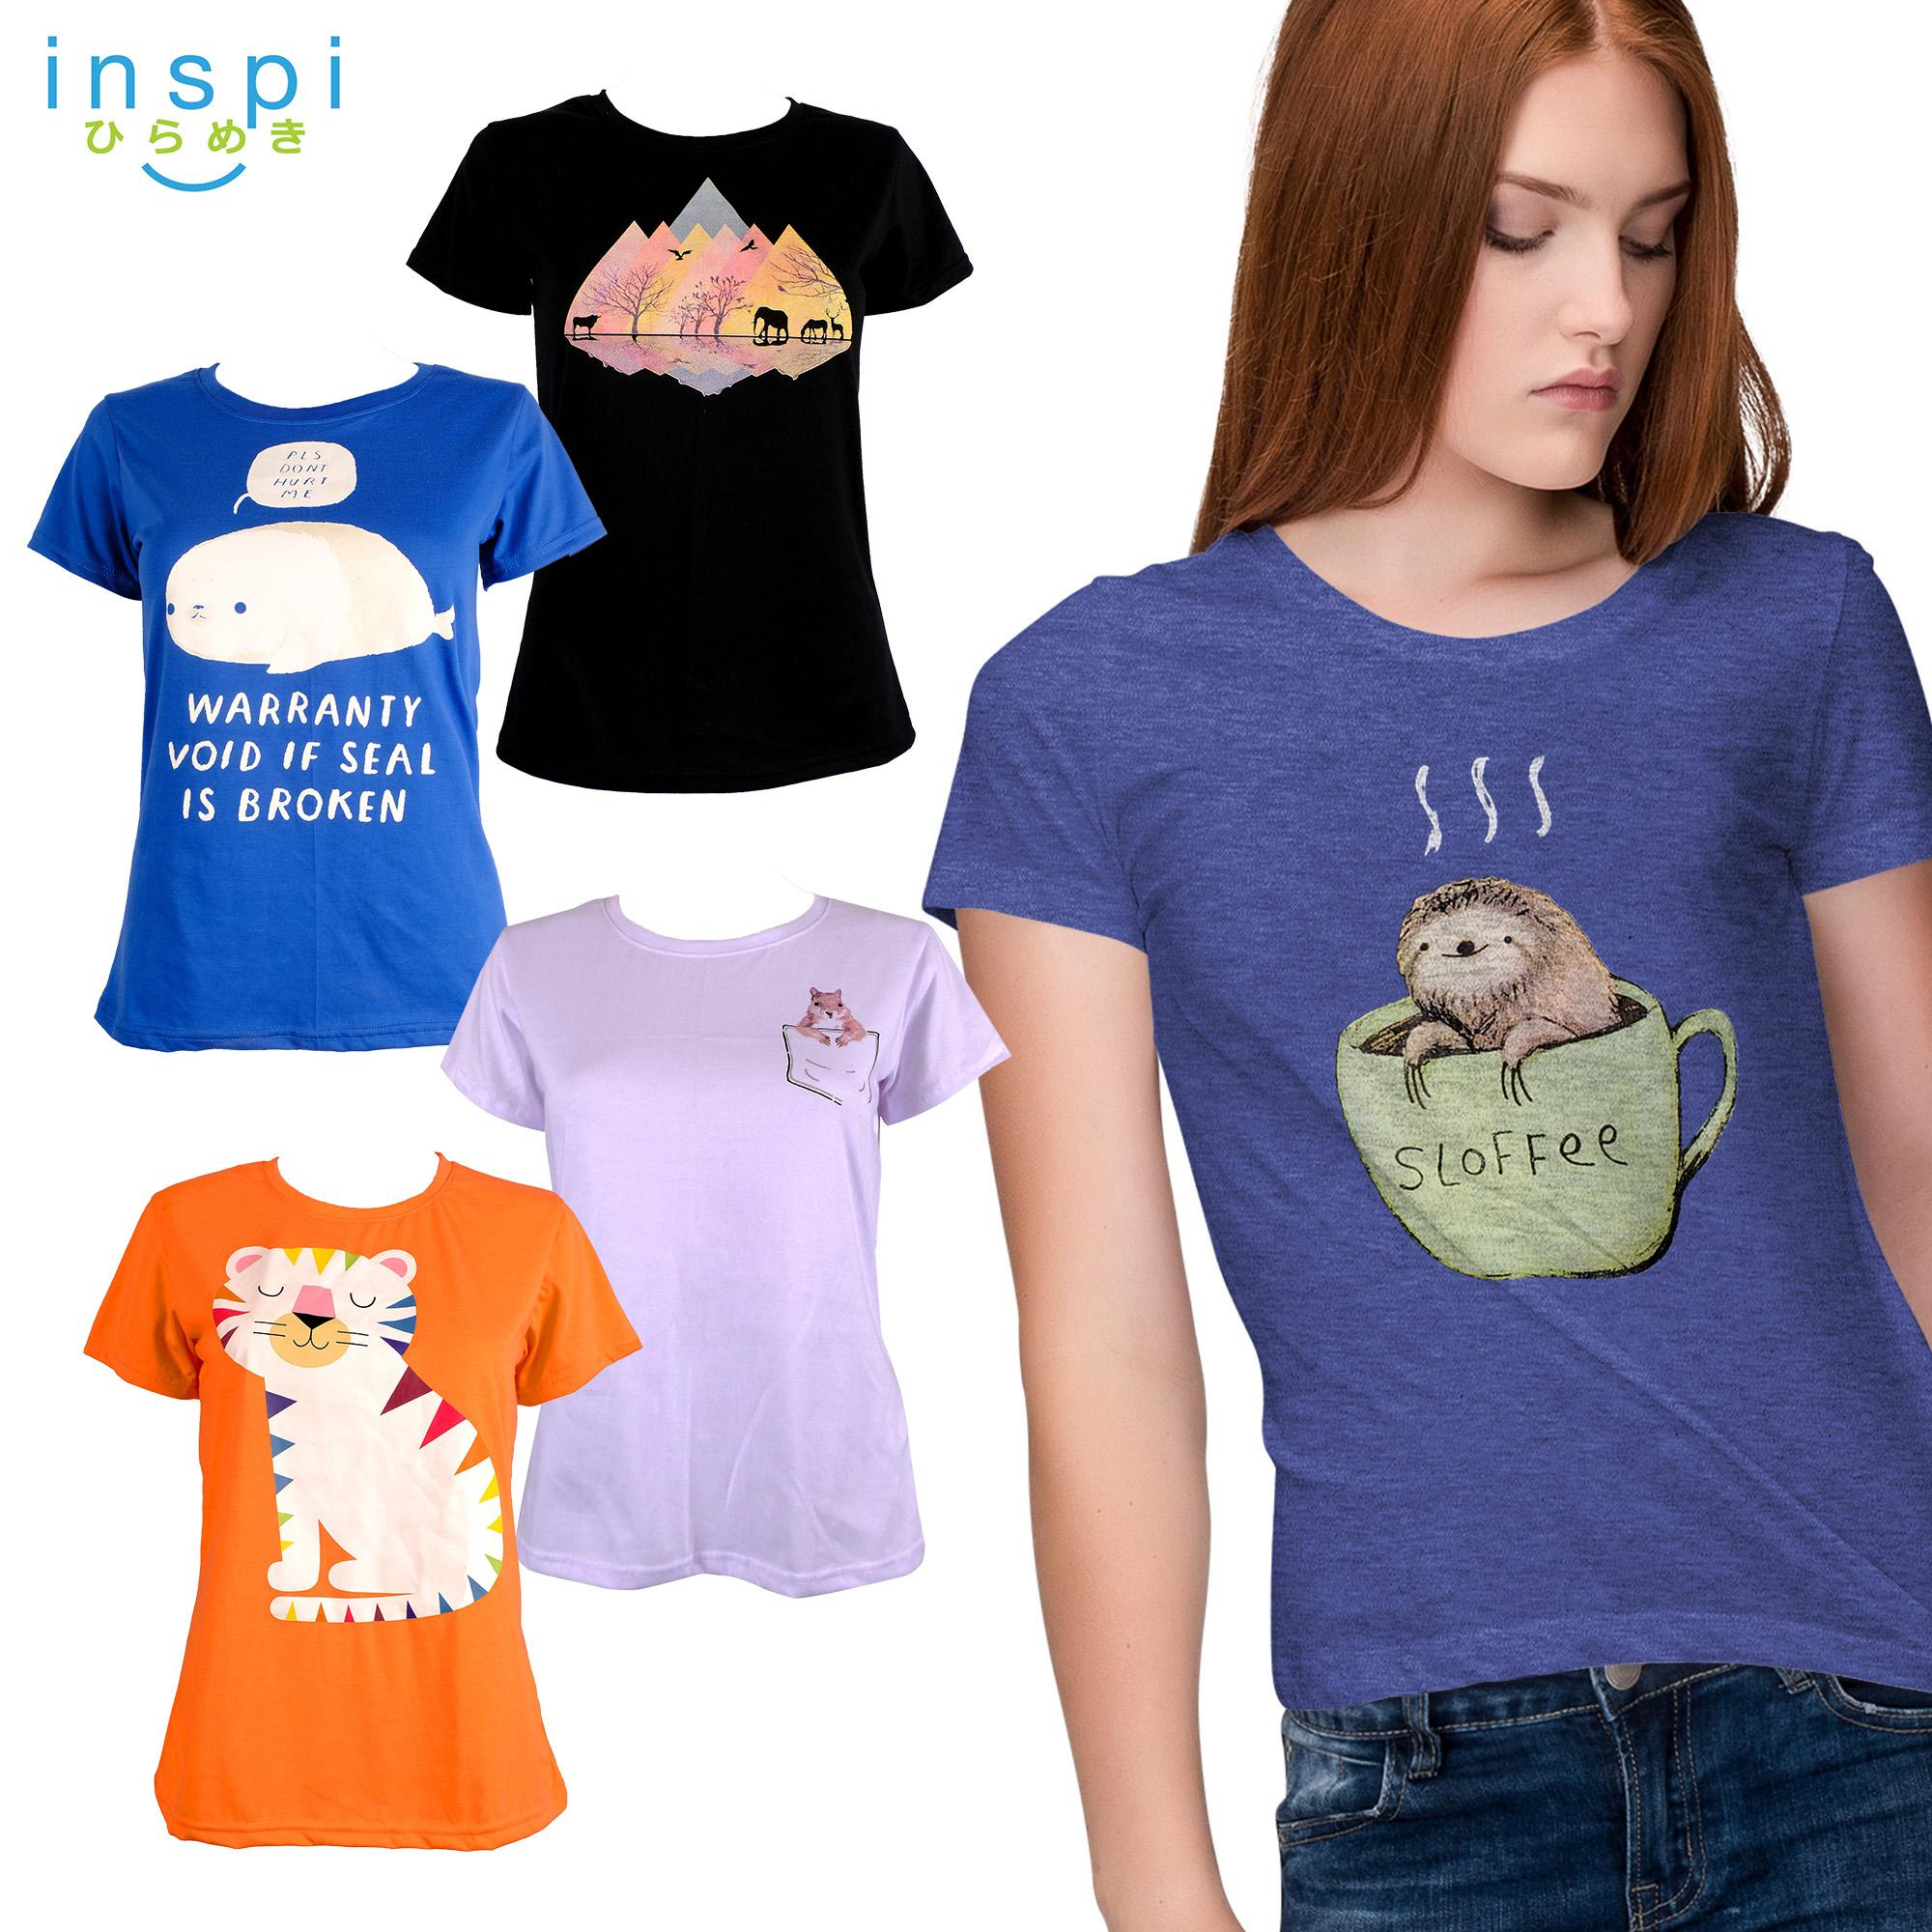 e5031b4454b5 INSPI Tees Ladies Pet Collection tshirt printed graphic tee Ladies t shirt  shirts women tshirts for